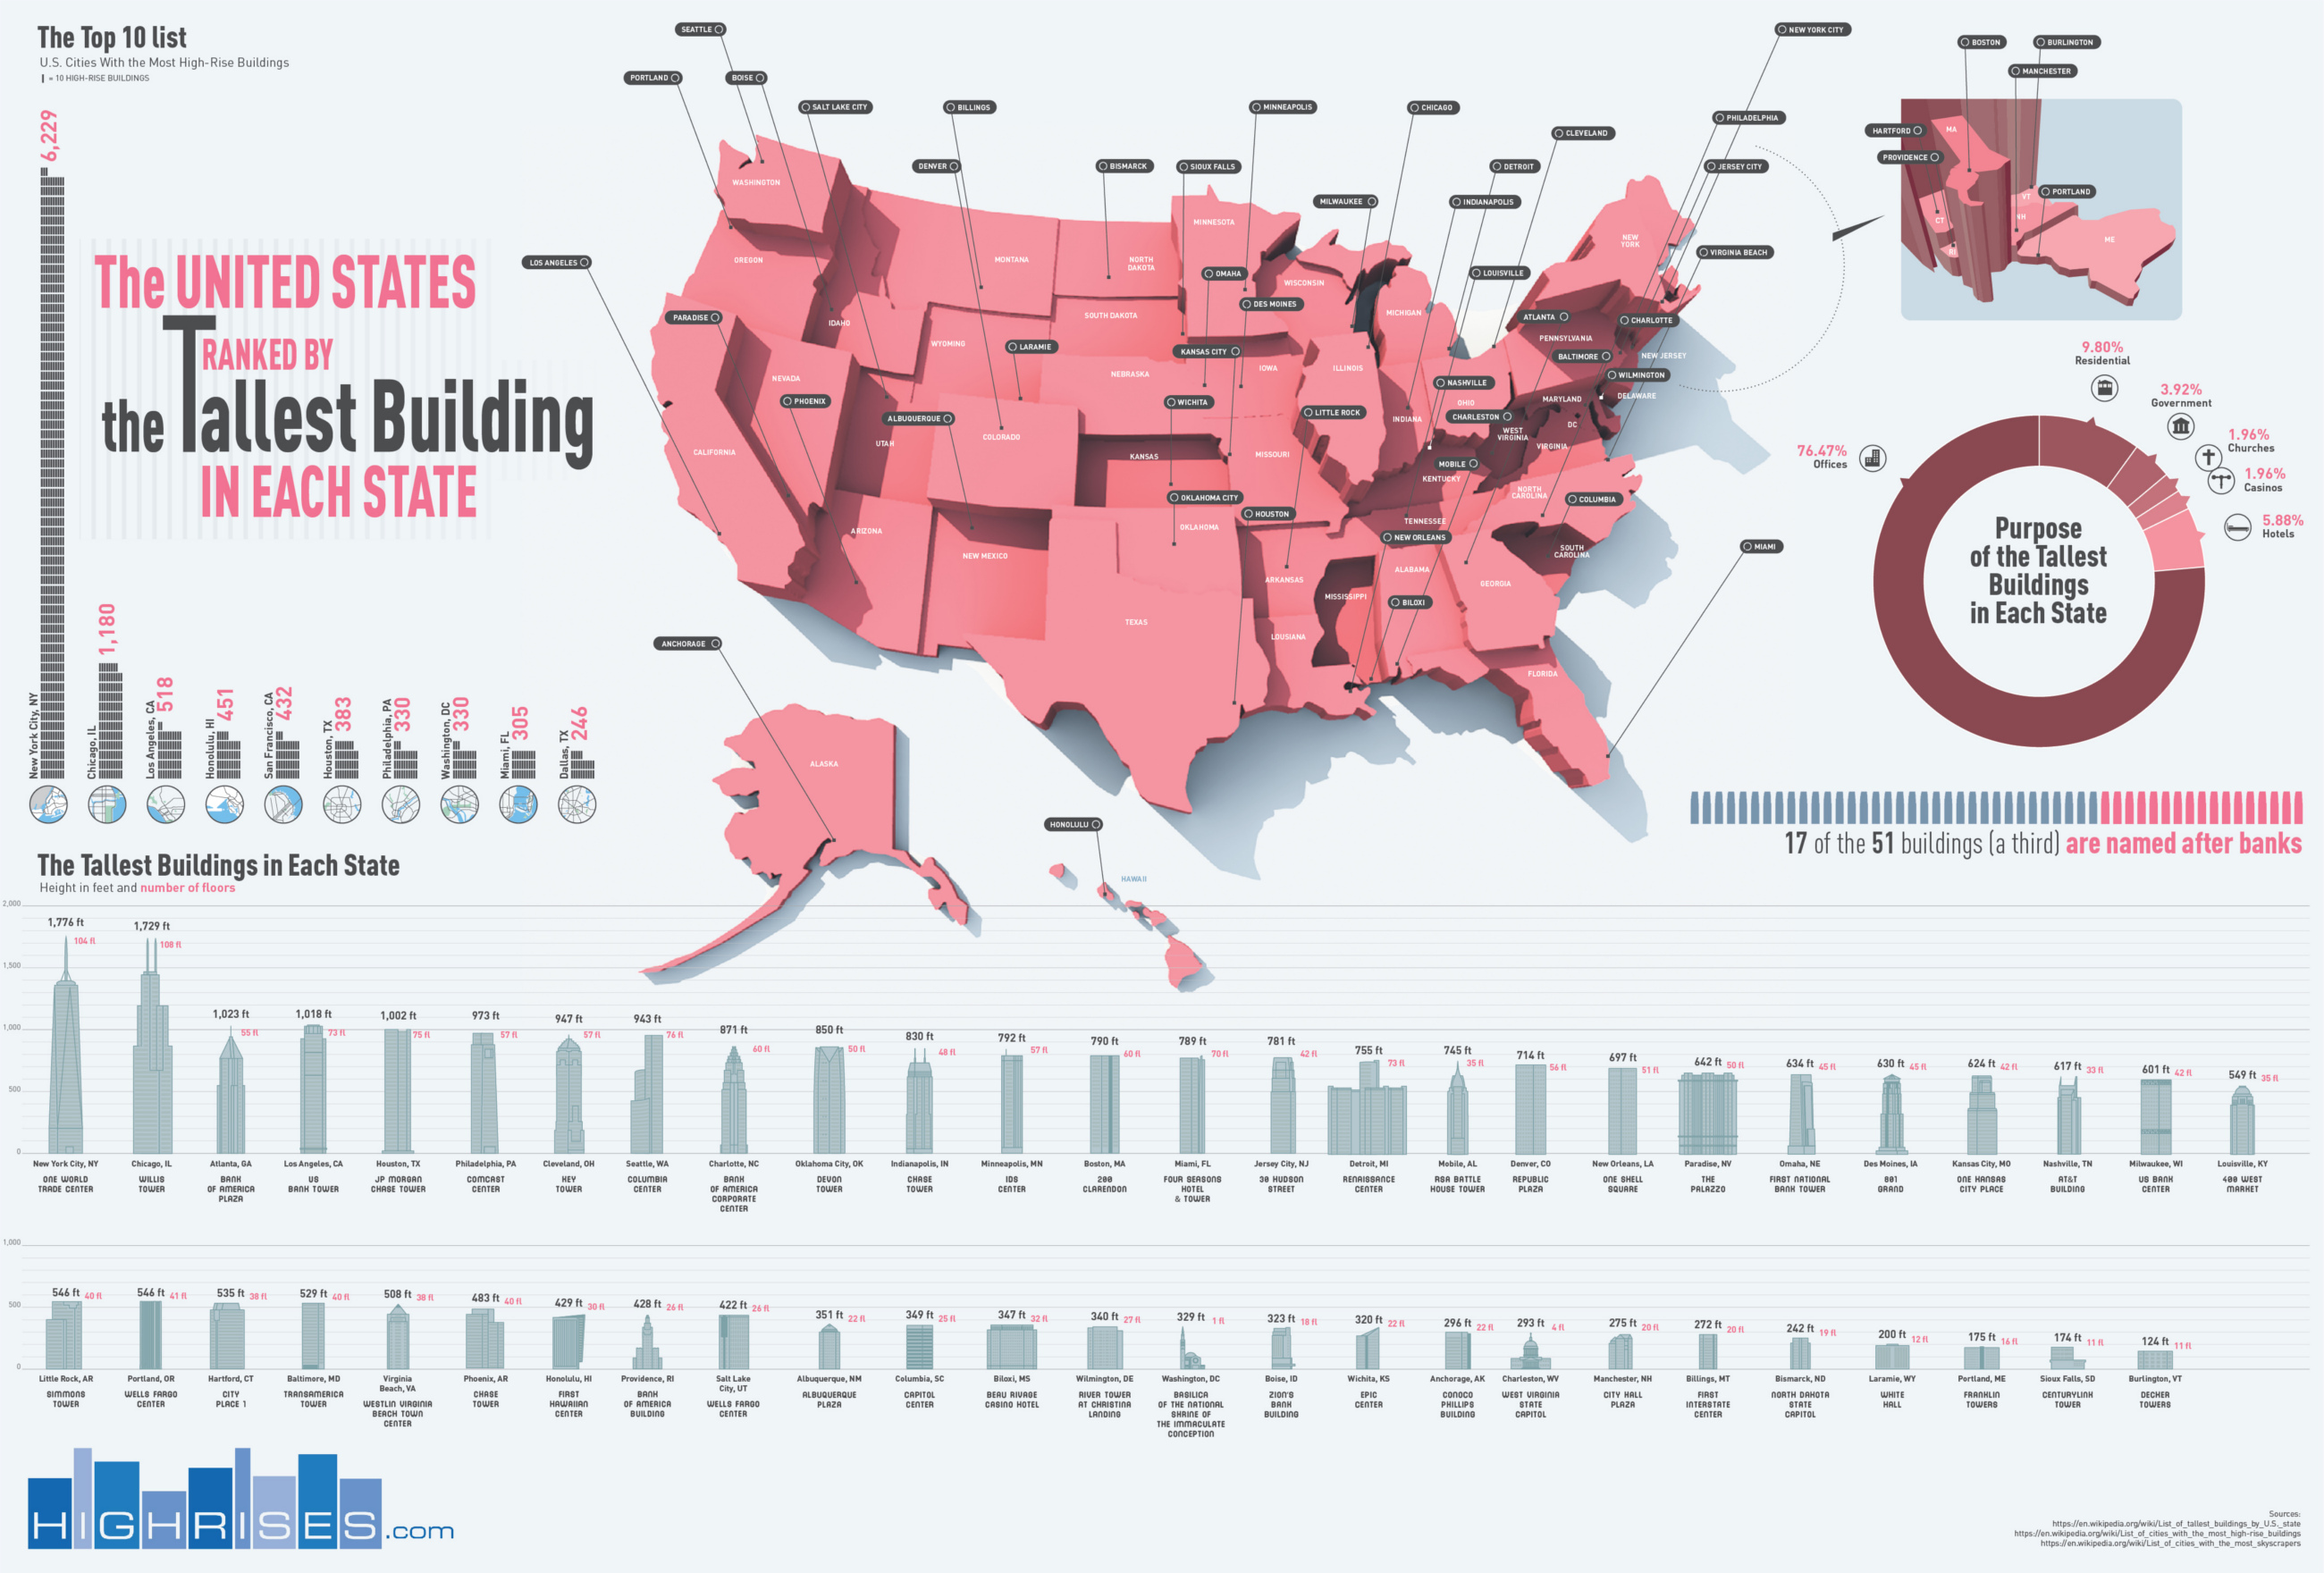 The Tallest Building in Each State